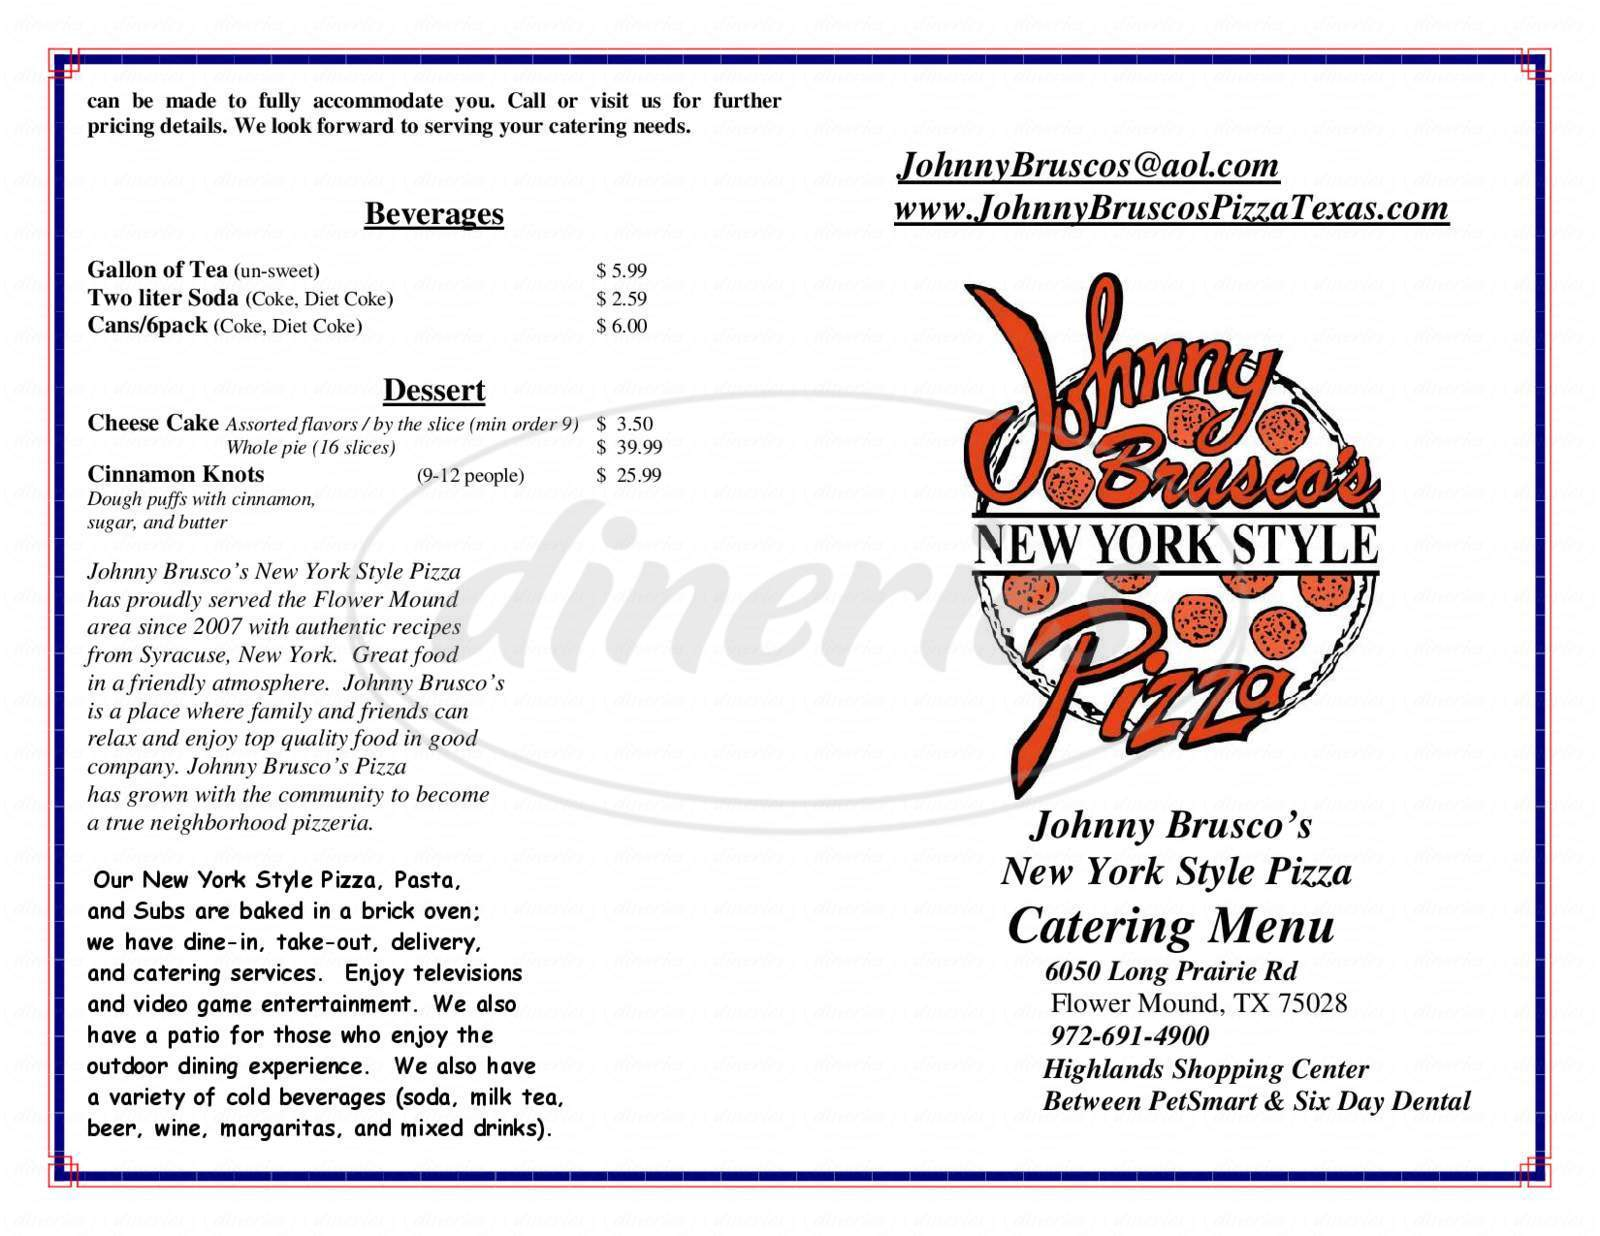 Big menu for Johnny Brusco's New York Style Pizza, Flower Mound